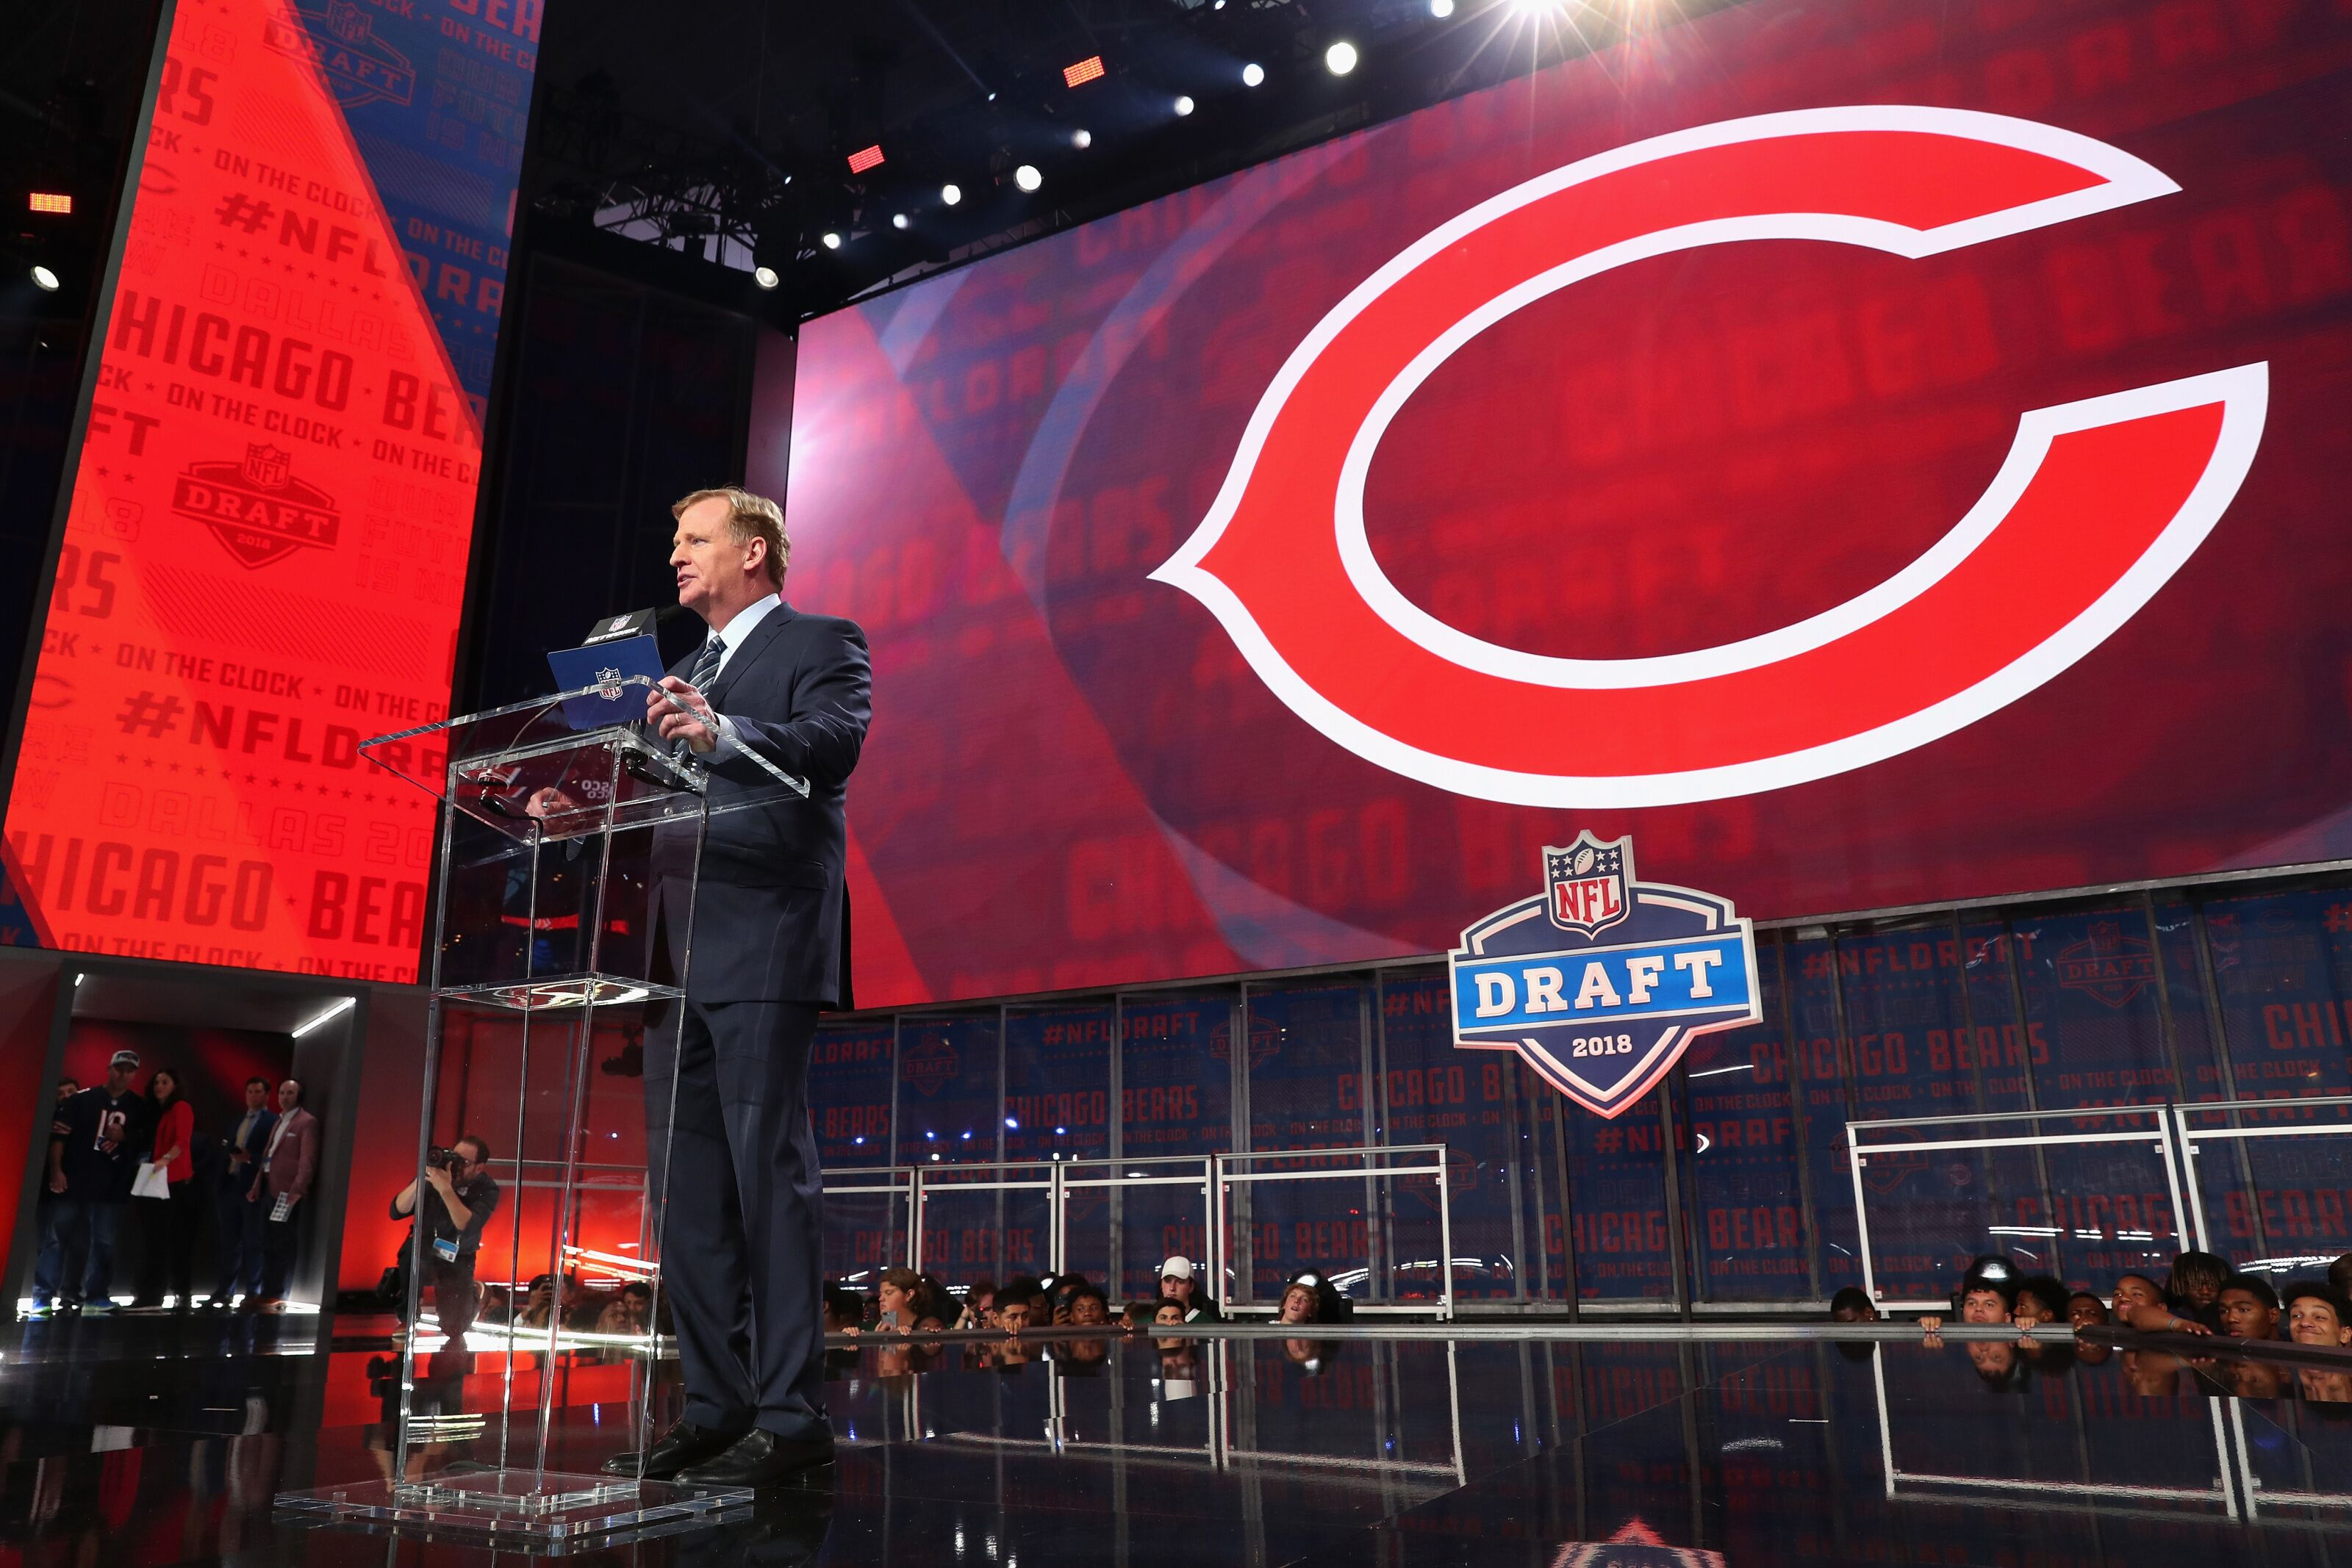 Chicago Bears 2019 draft situation is rarer than you think